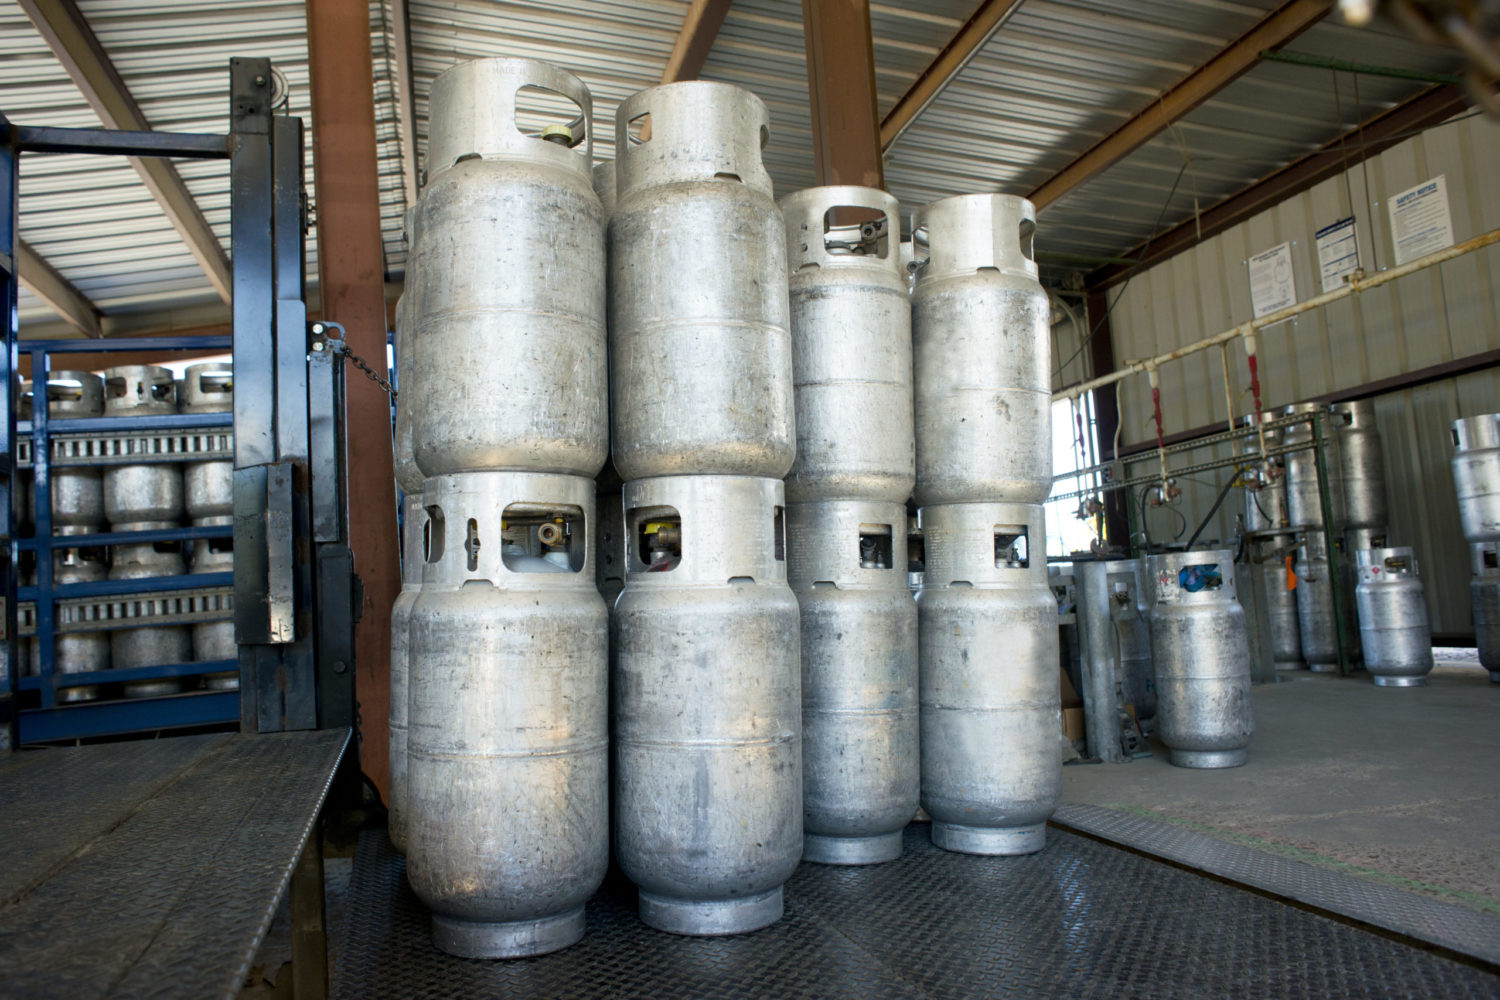 Commercial propane tank exchange and new tank delivery service